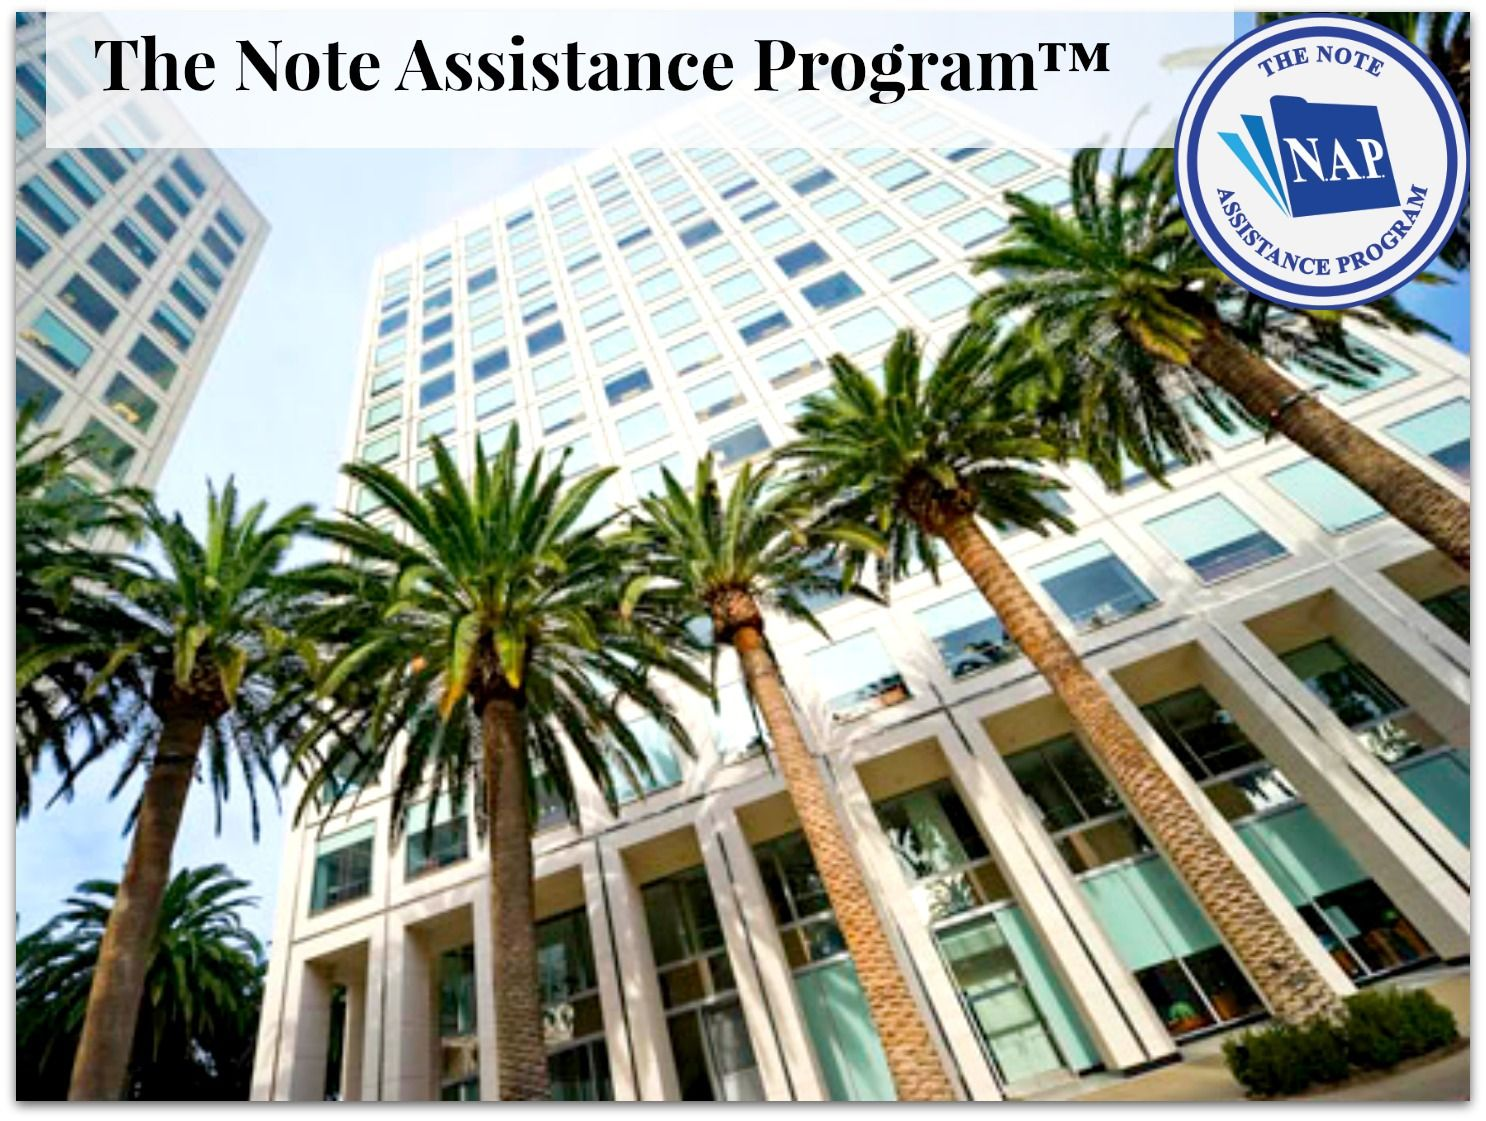 The Note Assistance Program